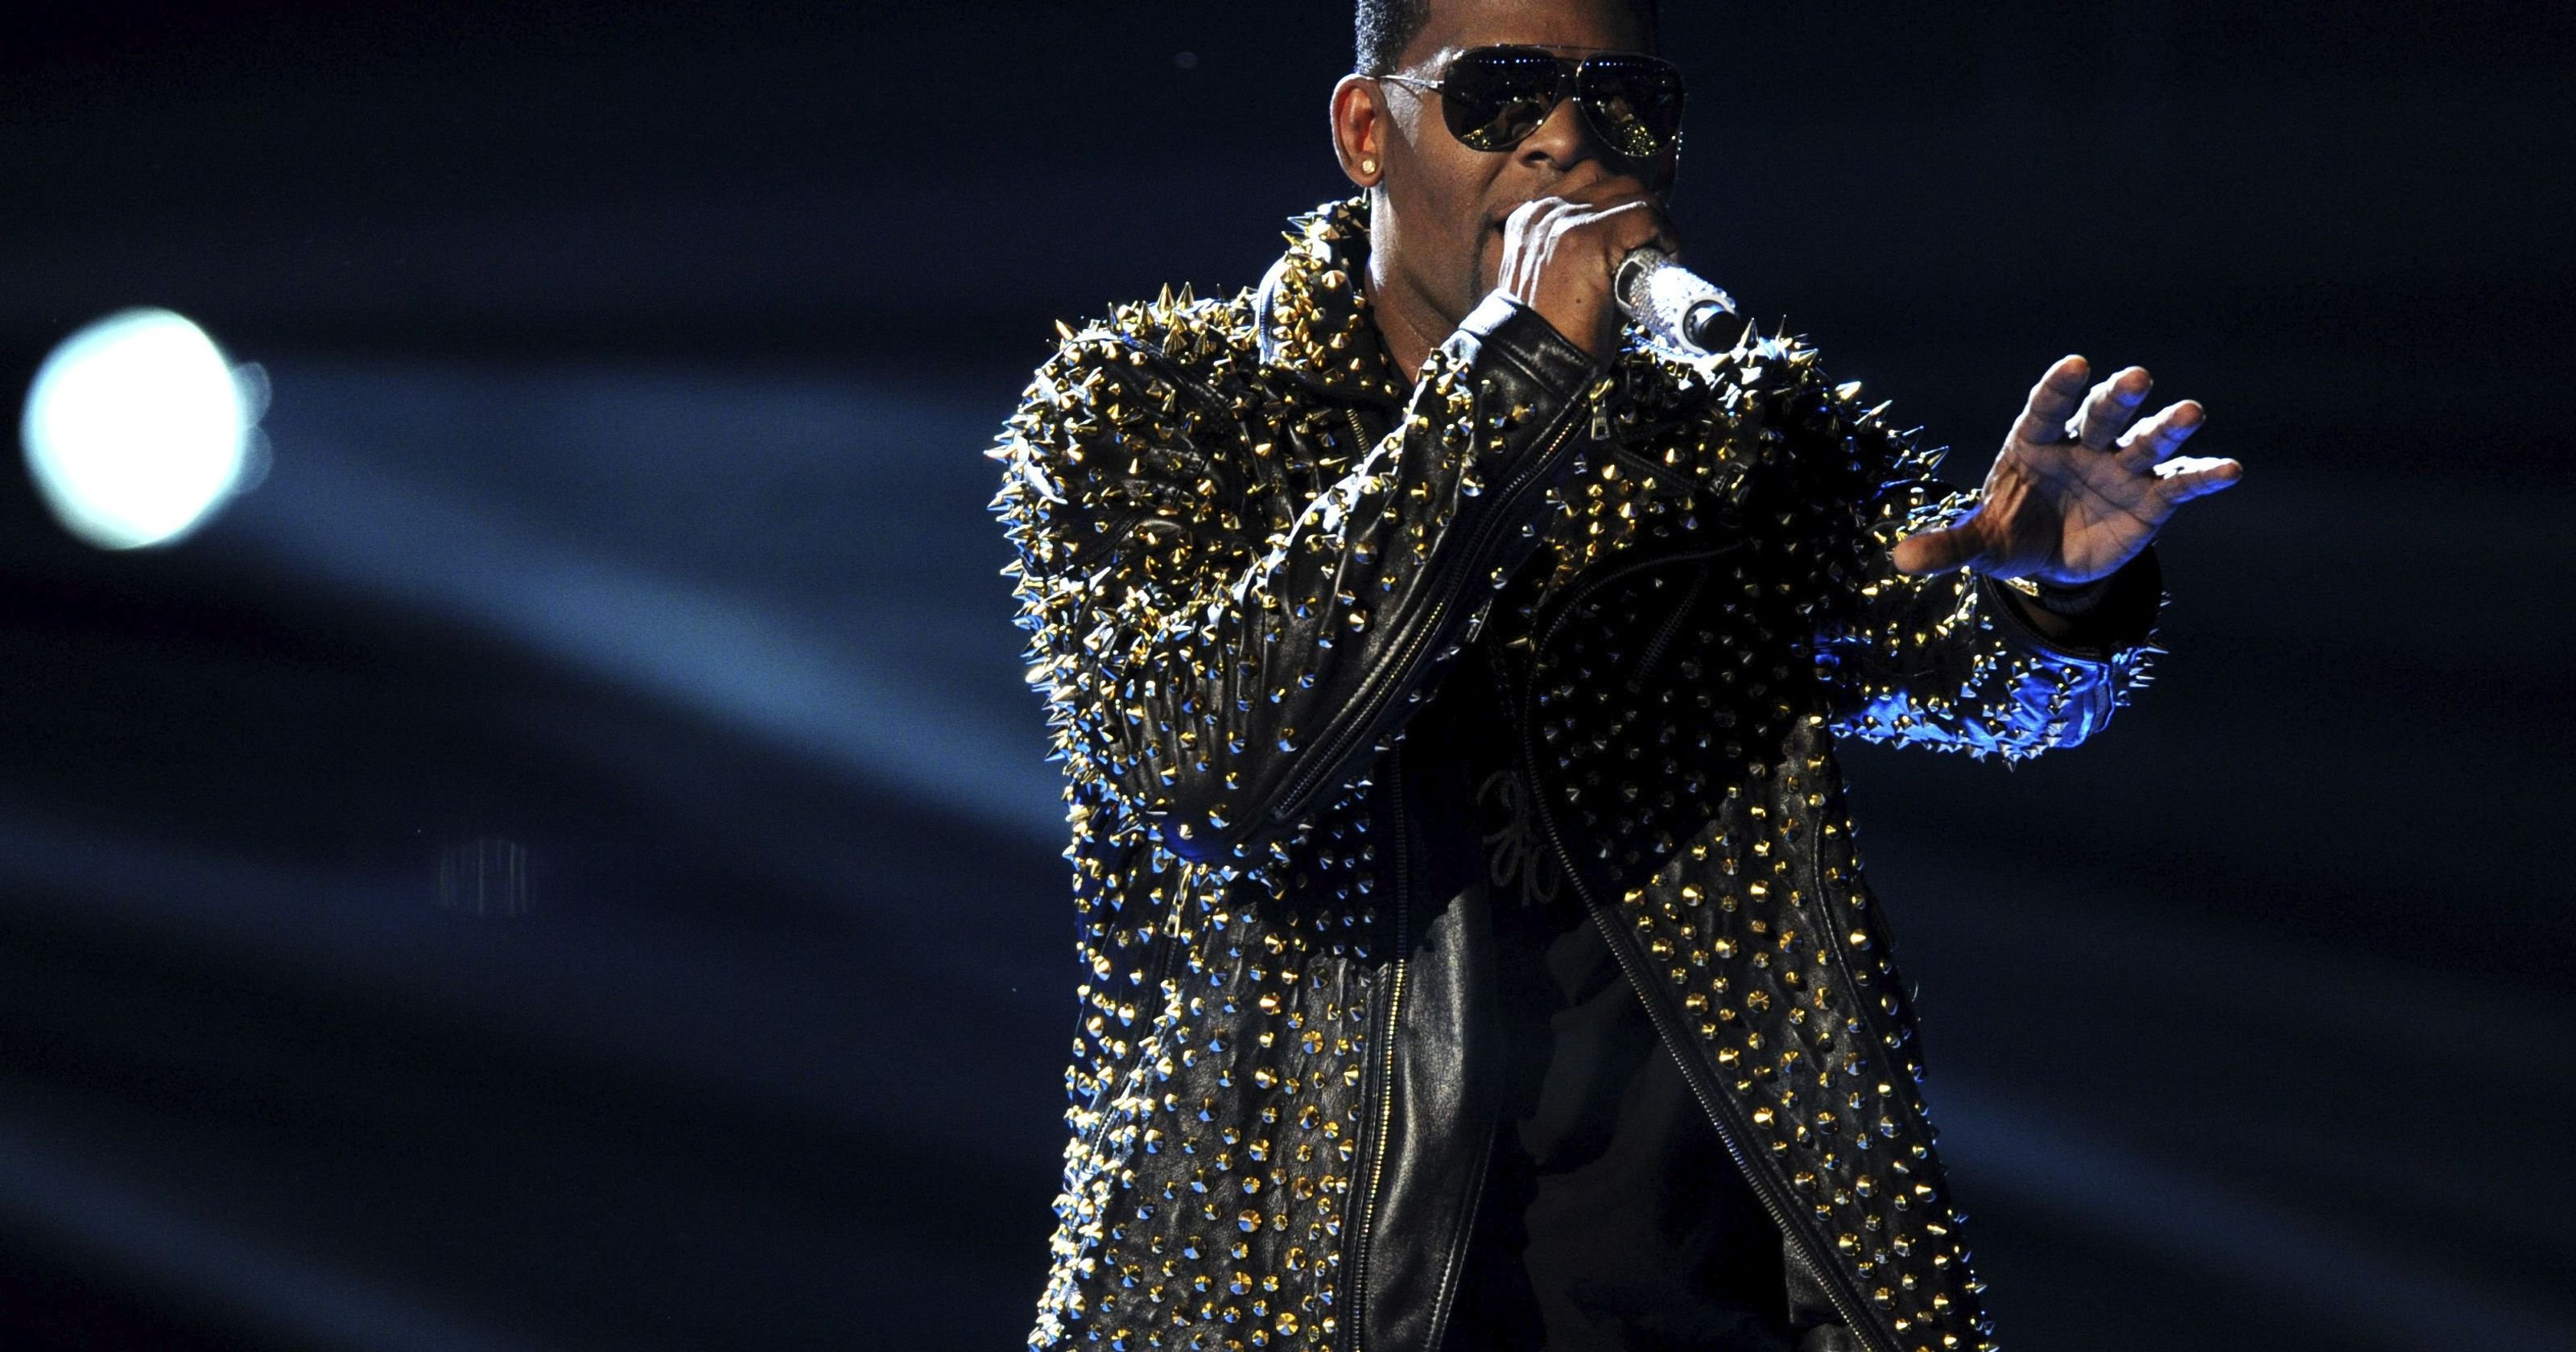 'Surviving R. Kelly' leads to spike in sales, streams for embattled artist